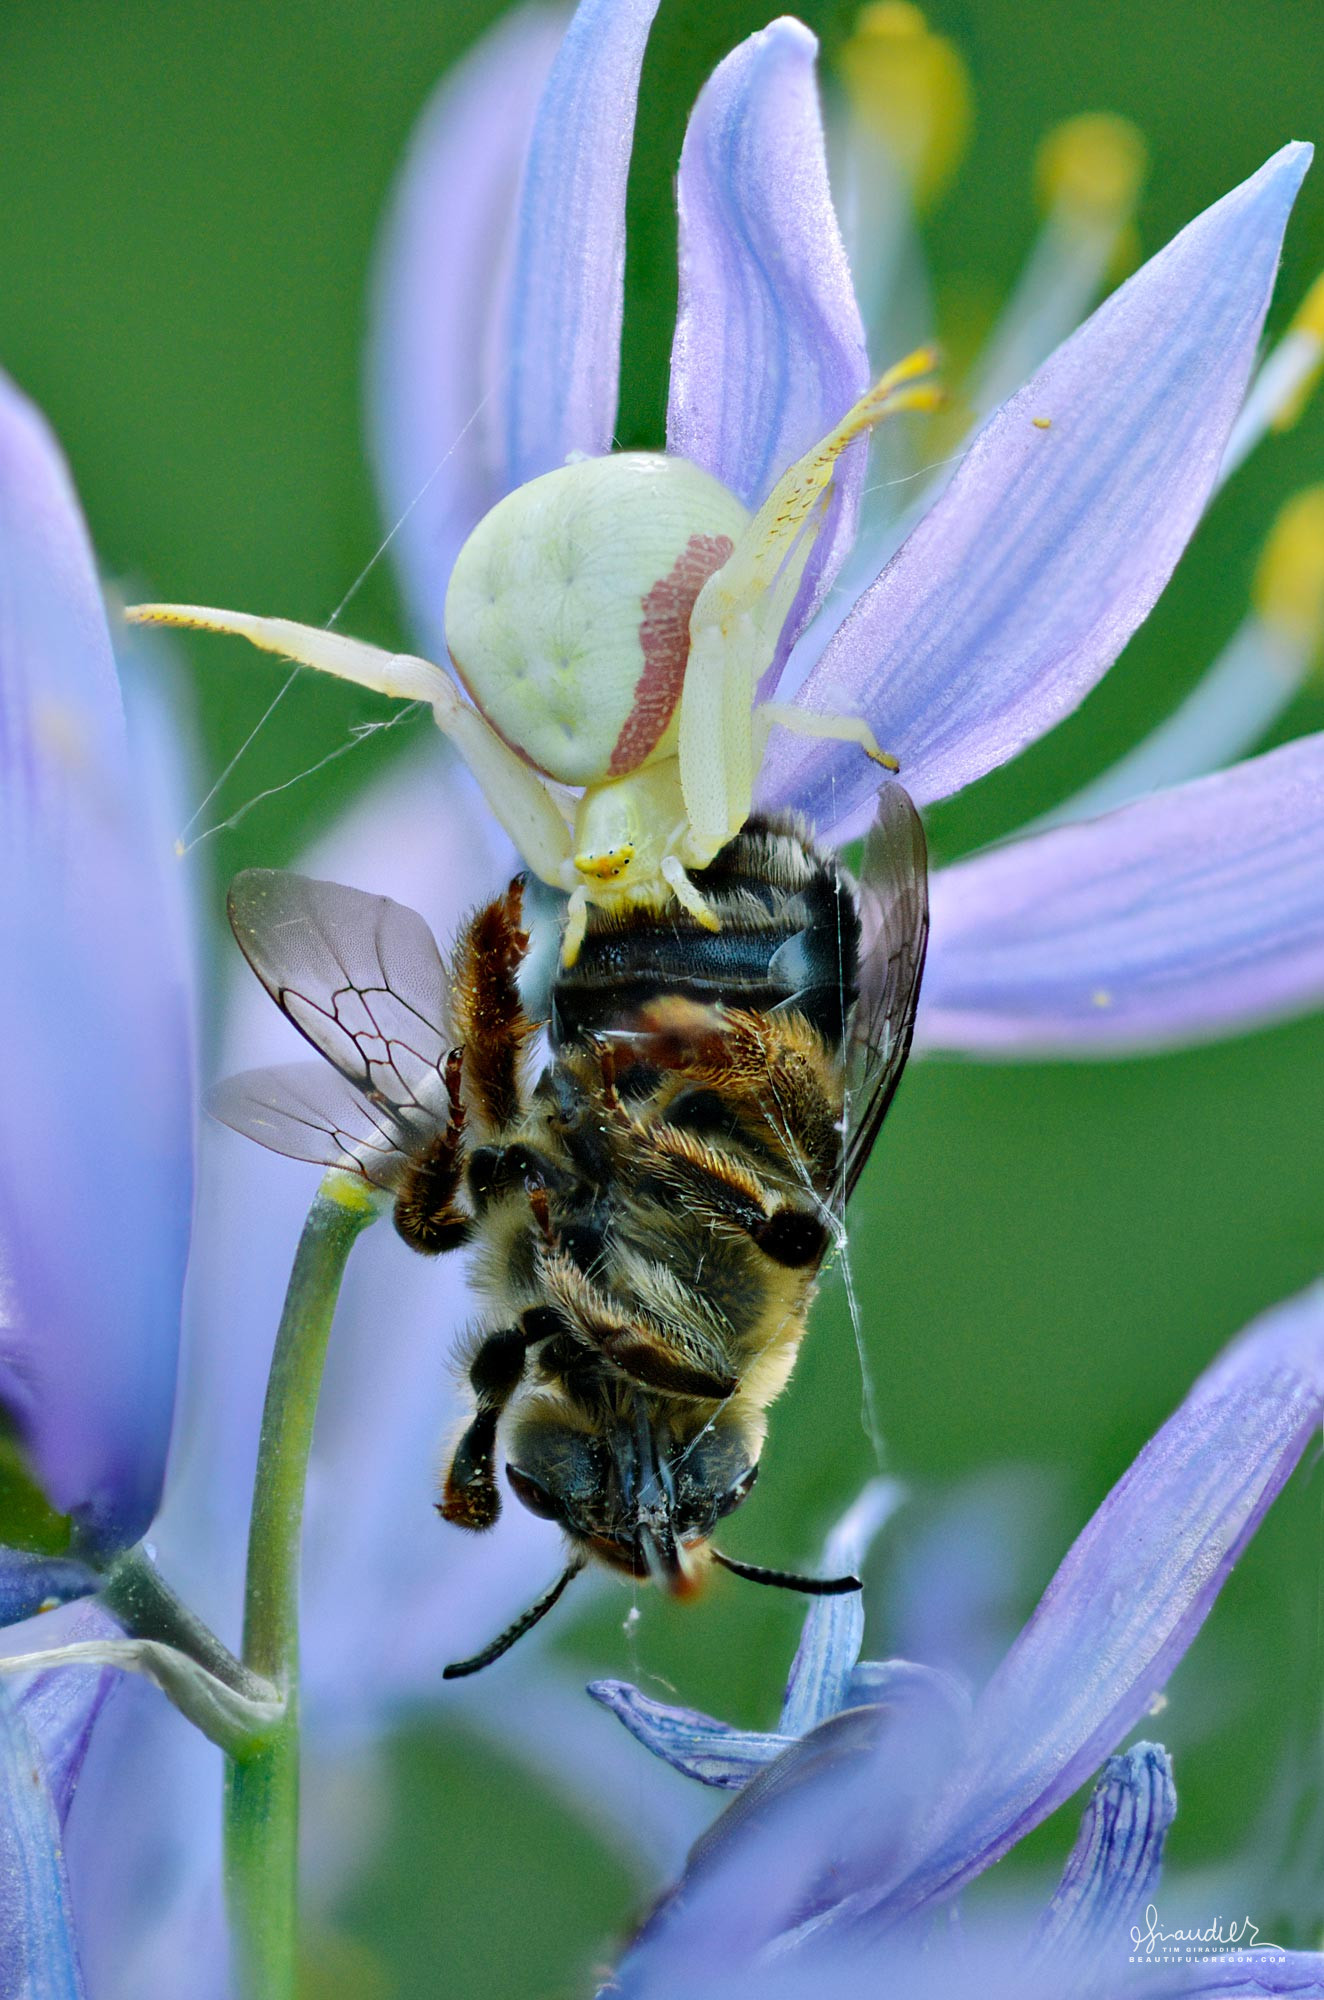 A white Goldenrod Crab Spider (Misumena vatia) feeds upon a wild honey bee in camas lily